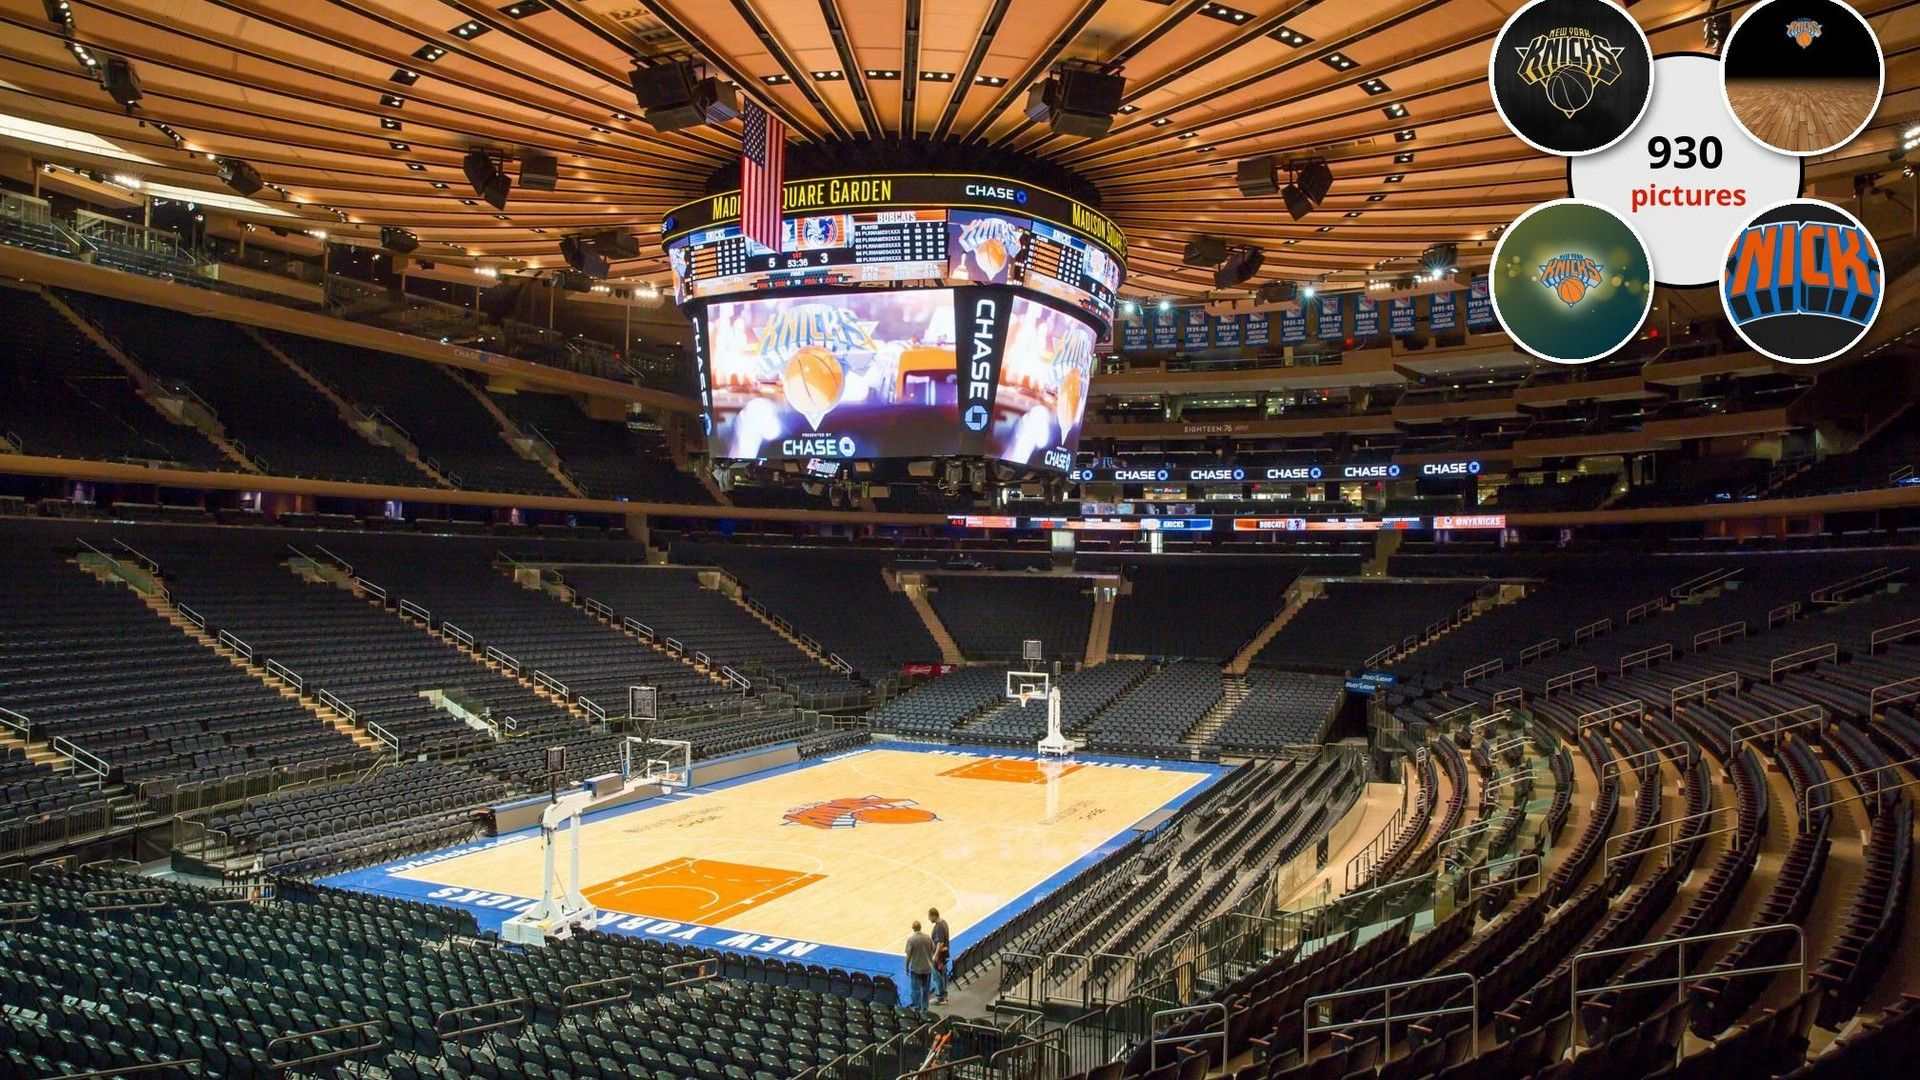 Wallpapers Hd Ny Knicks Is The Perfect High Quality Nba Basketball